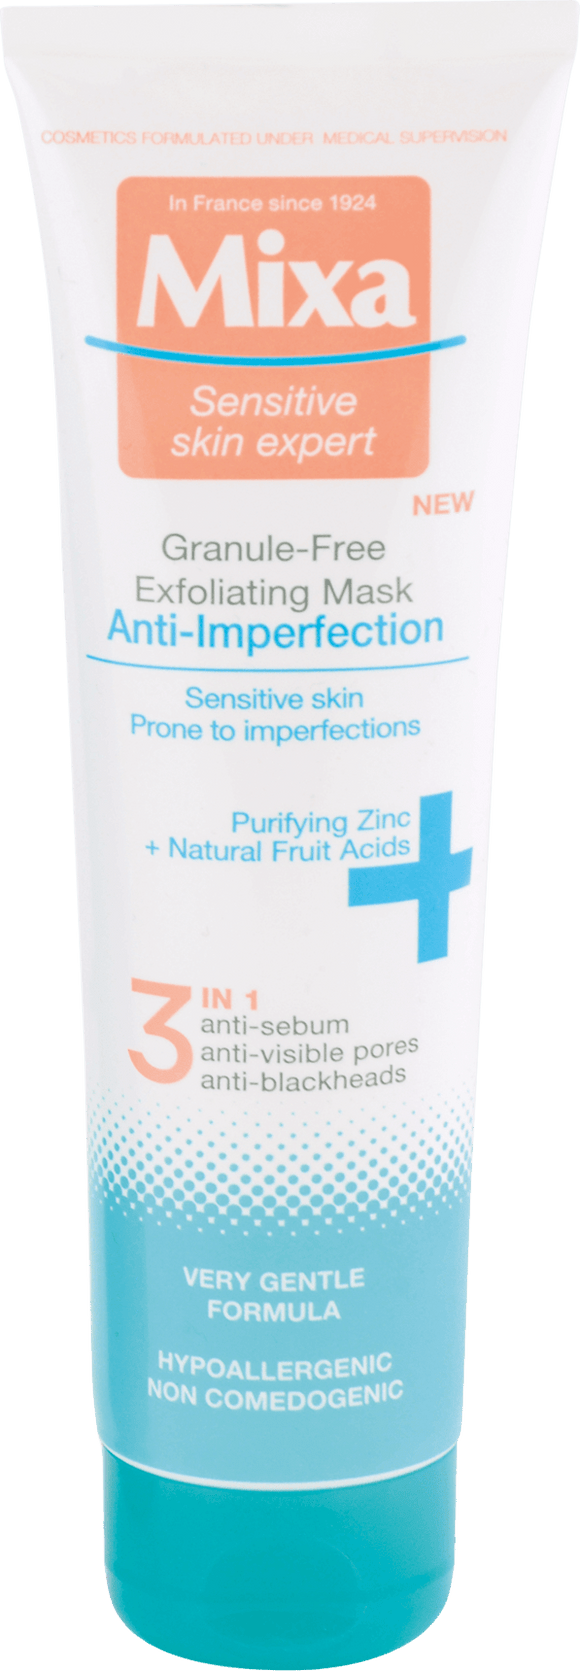 Mixa Anti Imperfection cleaning exfoliating mask anti black dots pores 150 ml - mydrxm.com